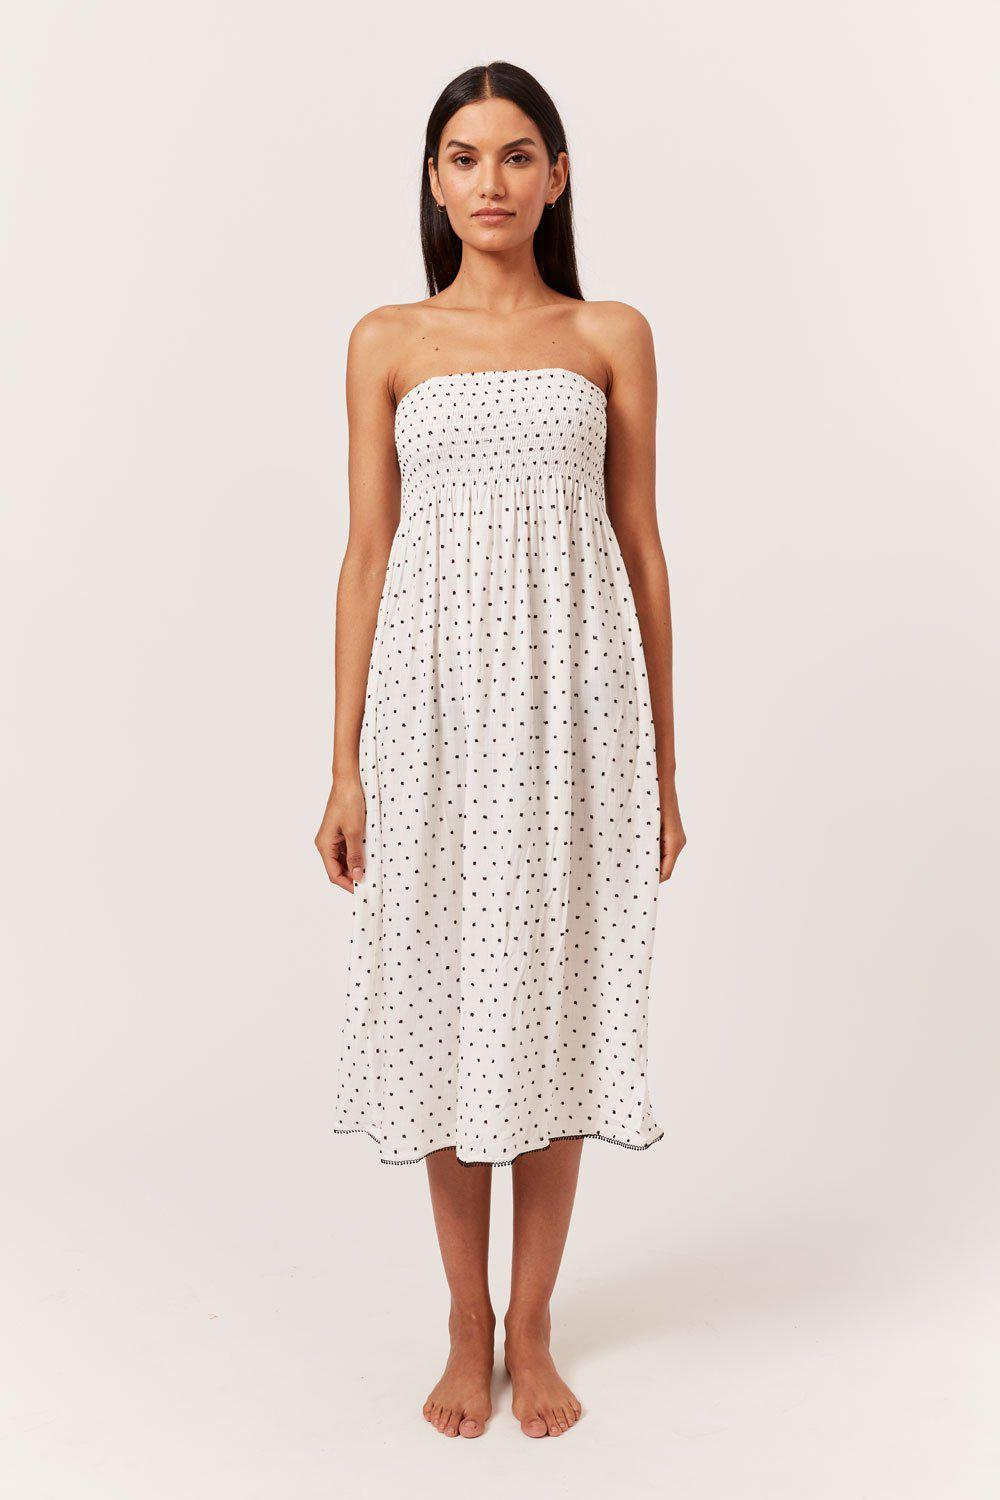 The Willow Dress 3